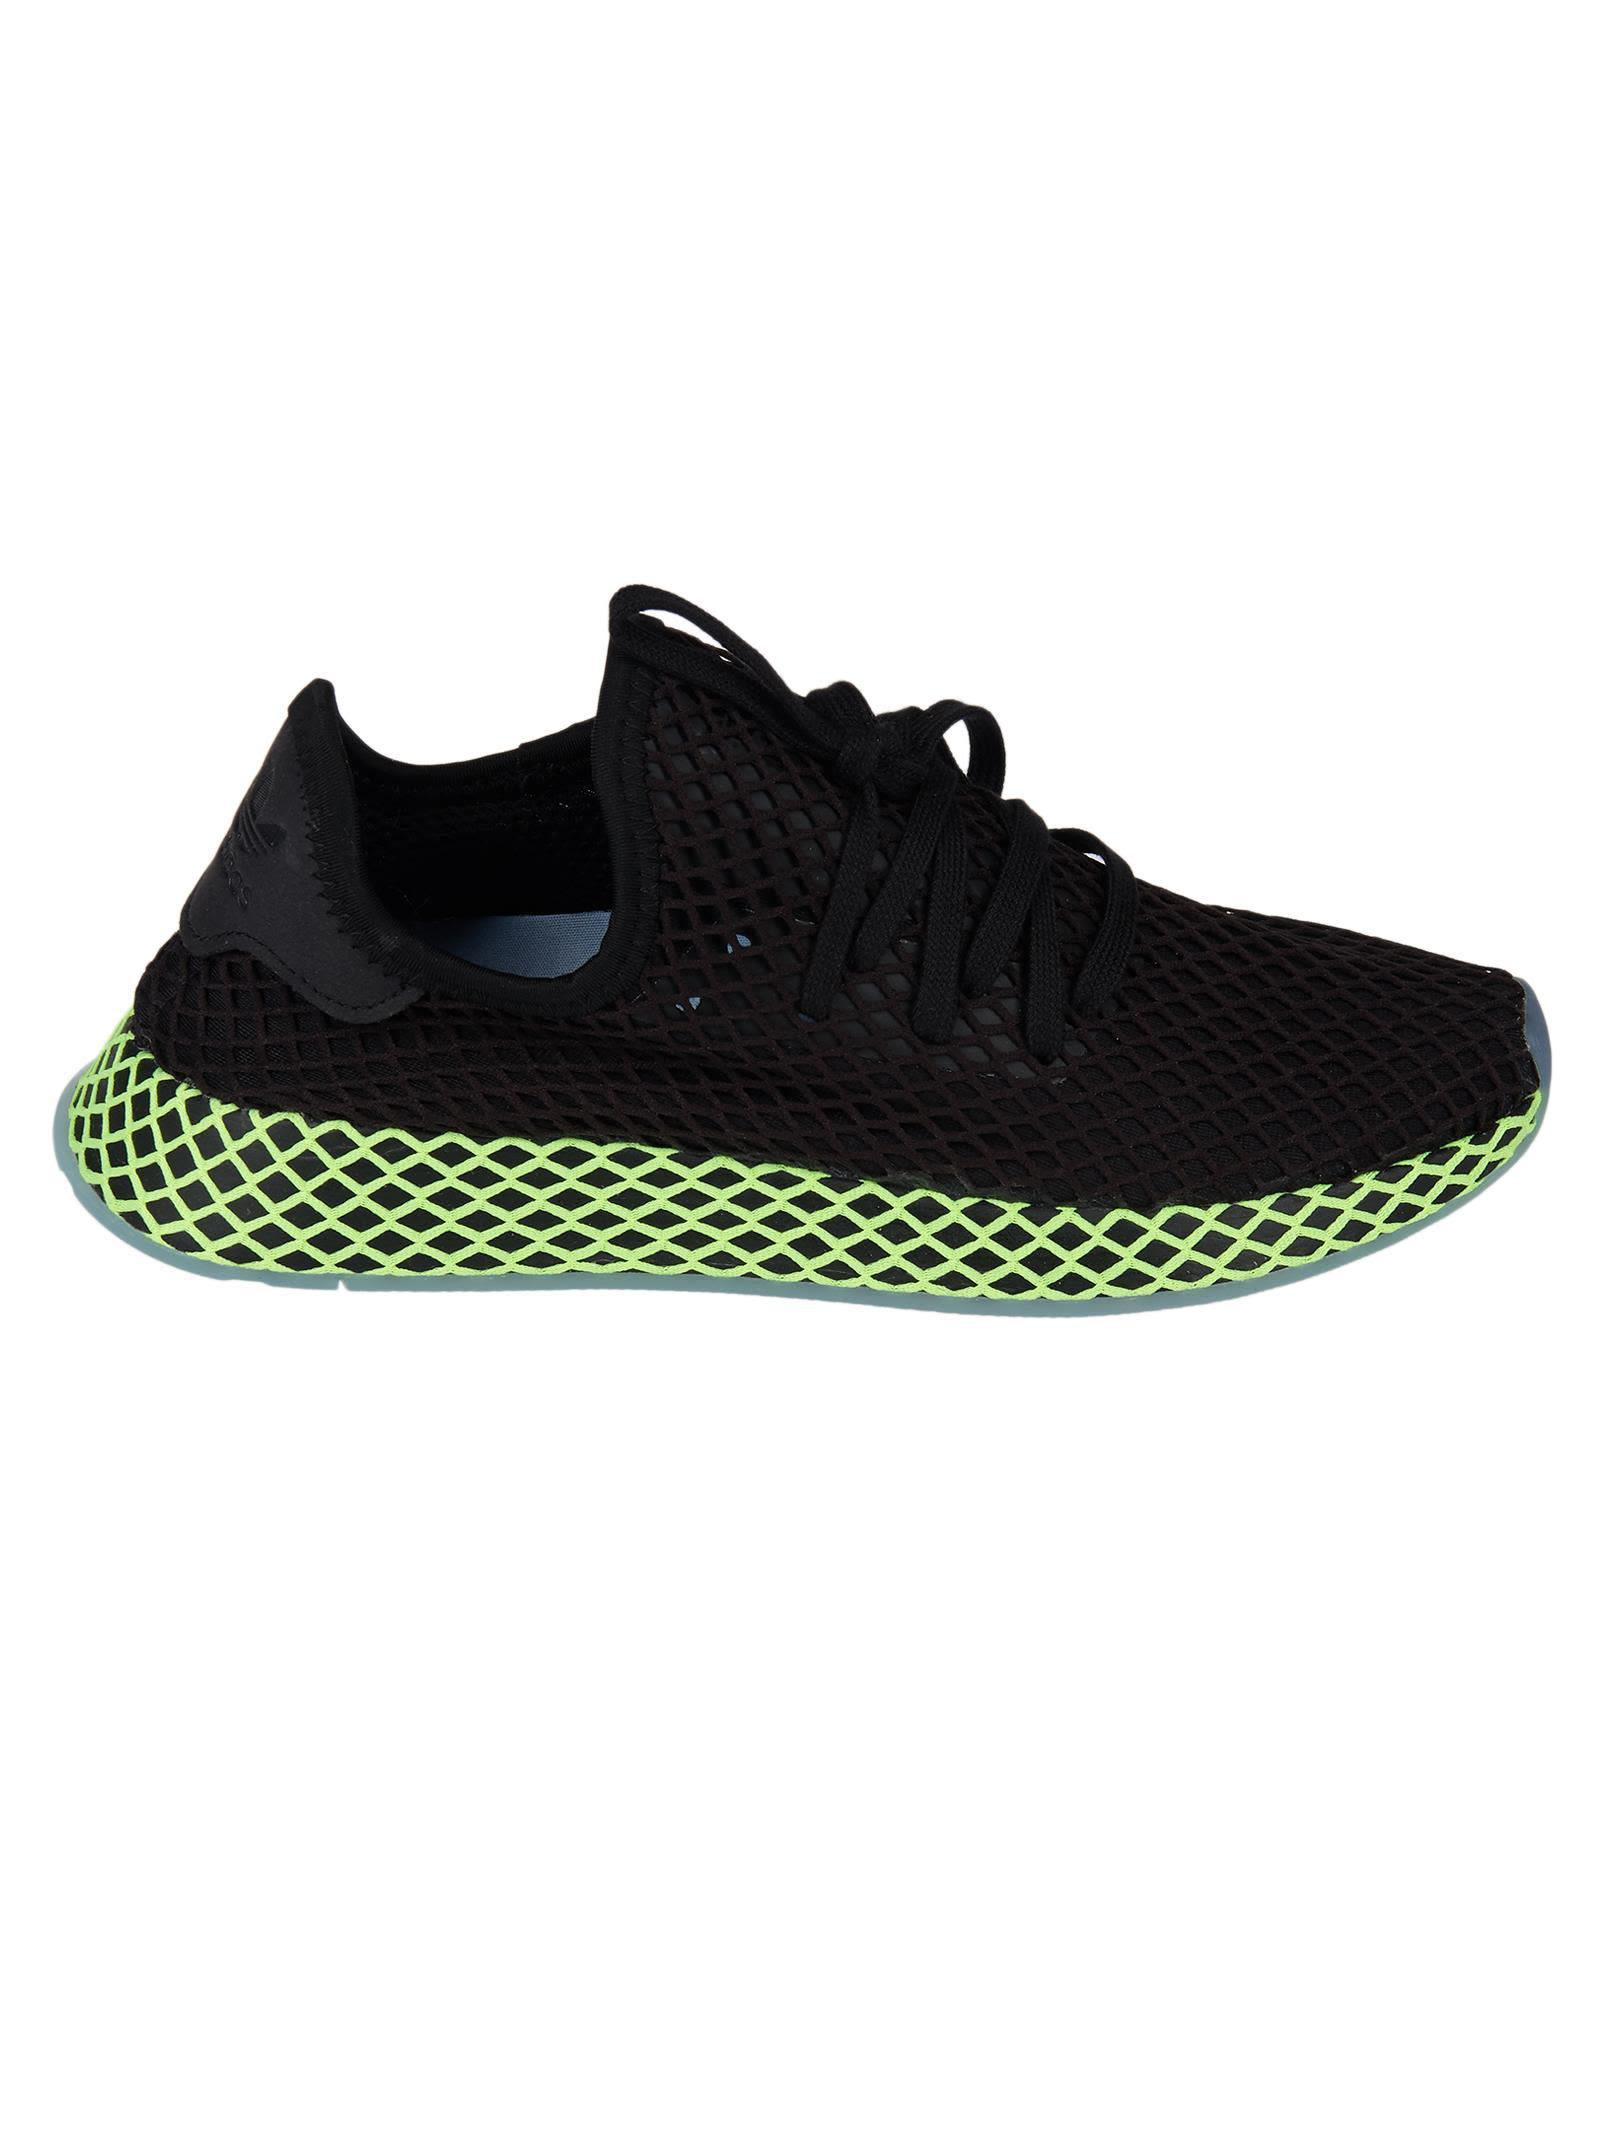 2c7423aa9 Adidas Originals Adidas Black And Green Deerupt Runner Sneakers ...